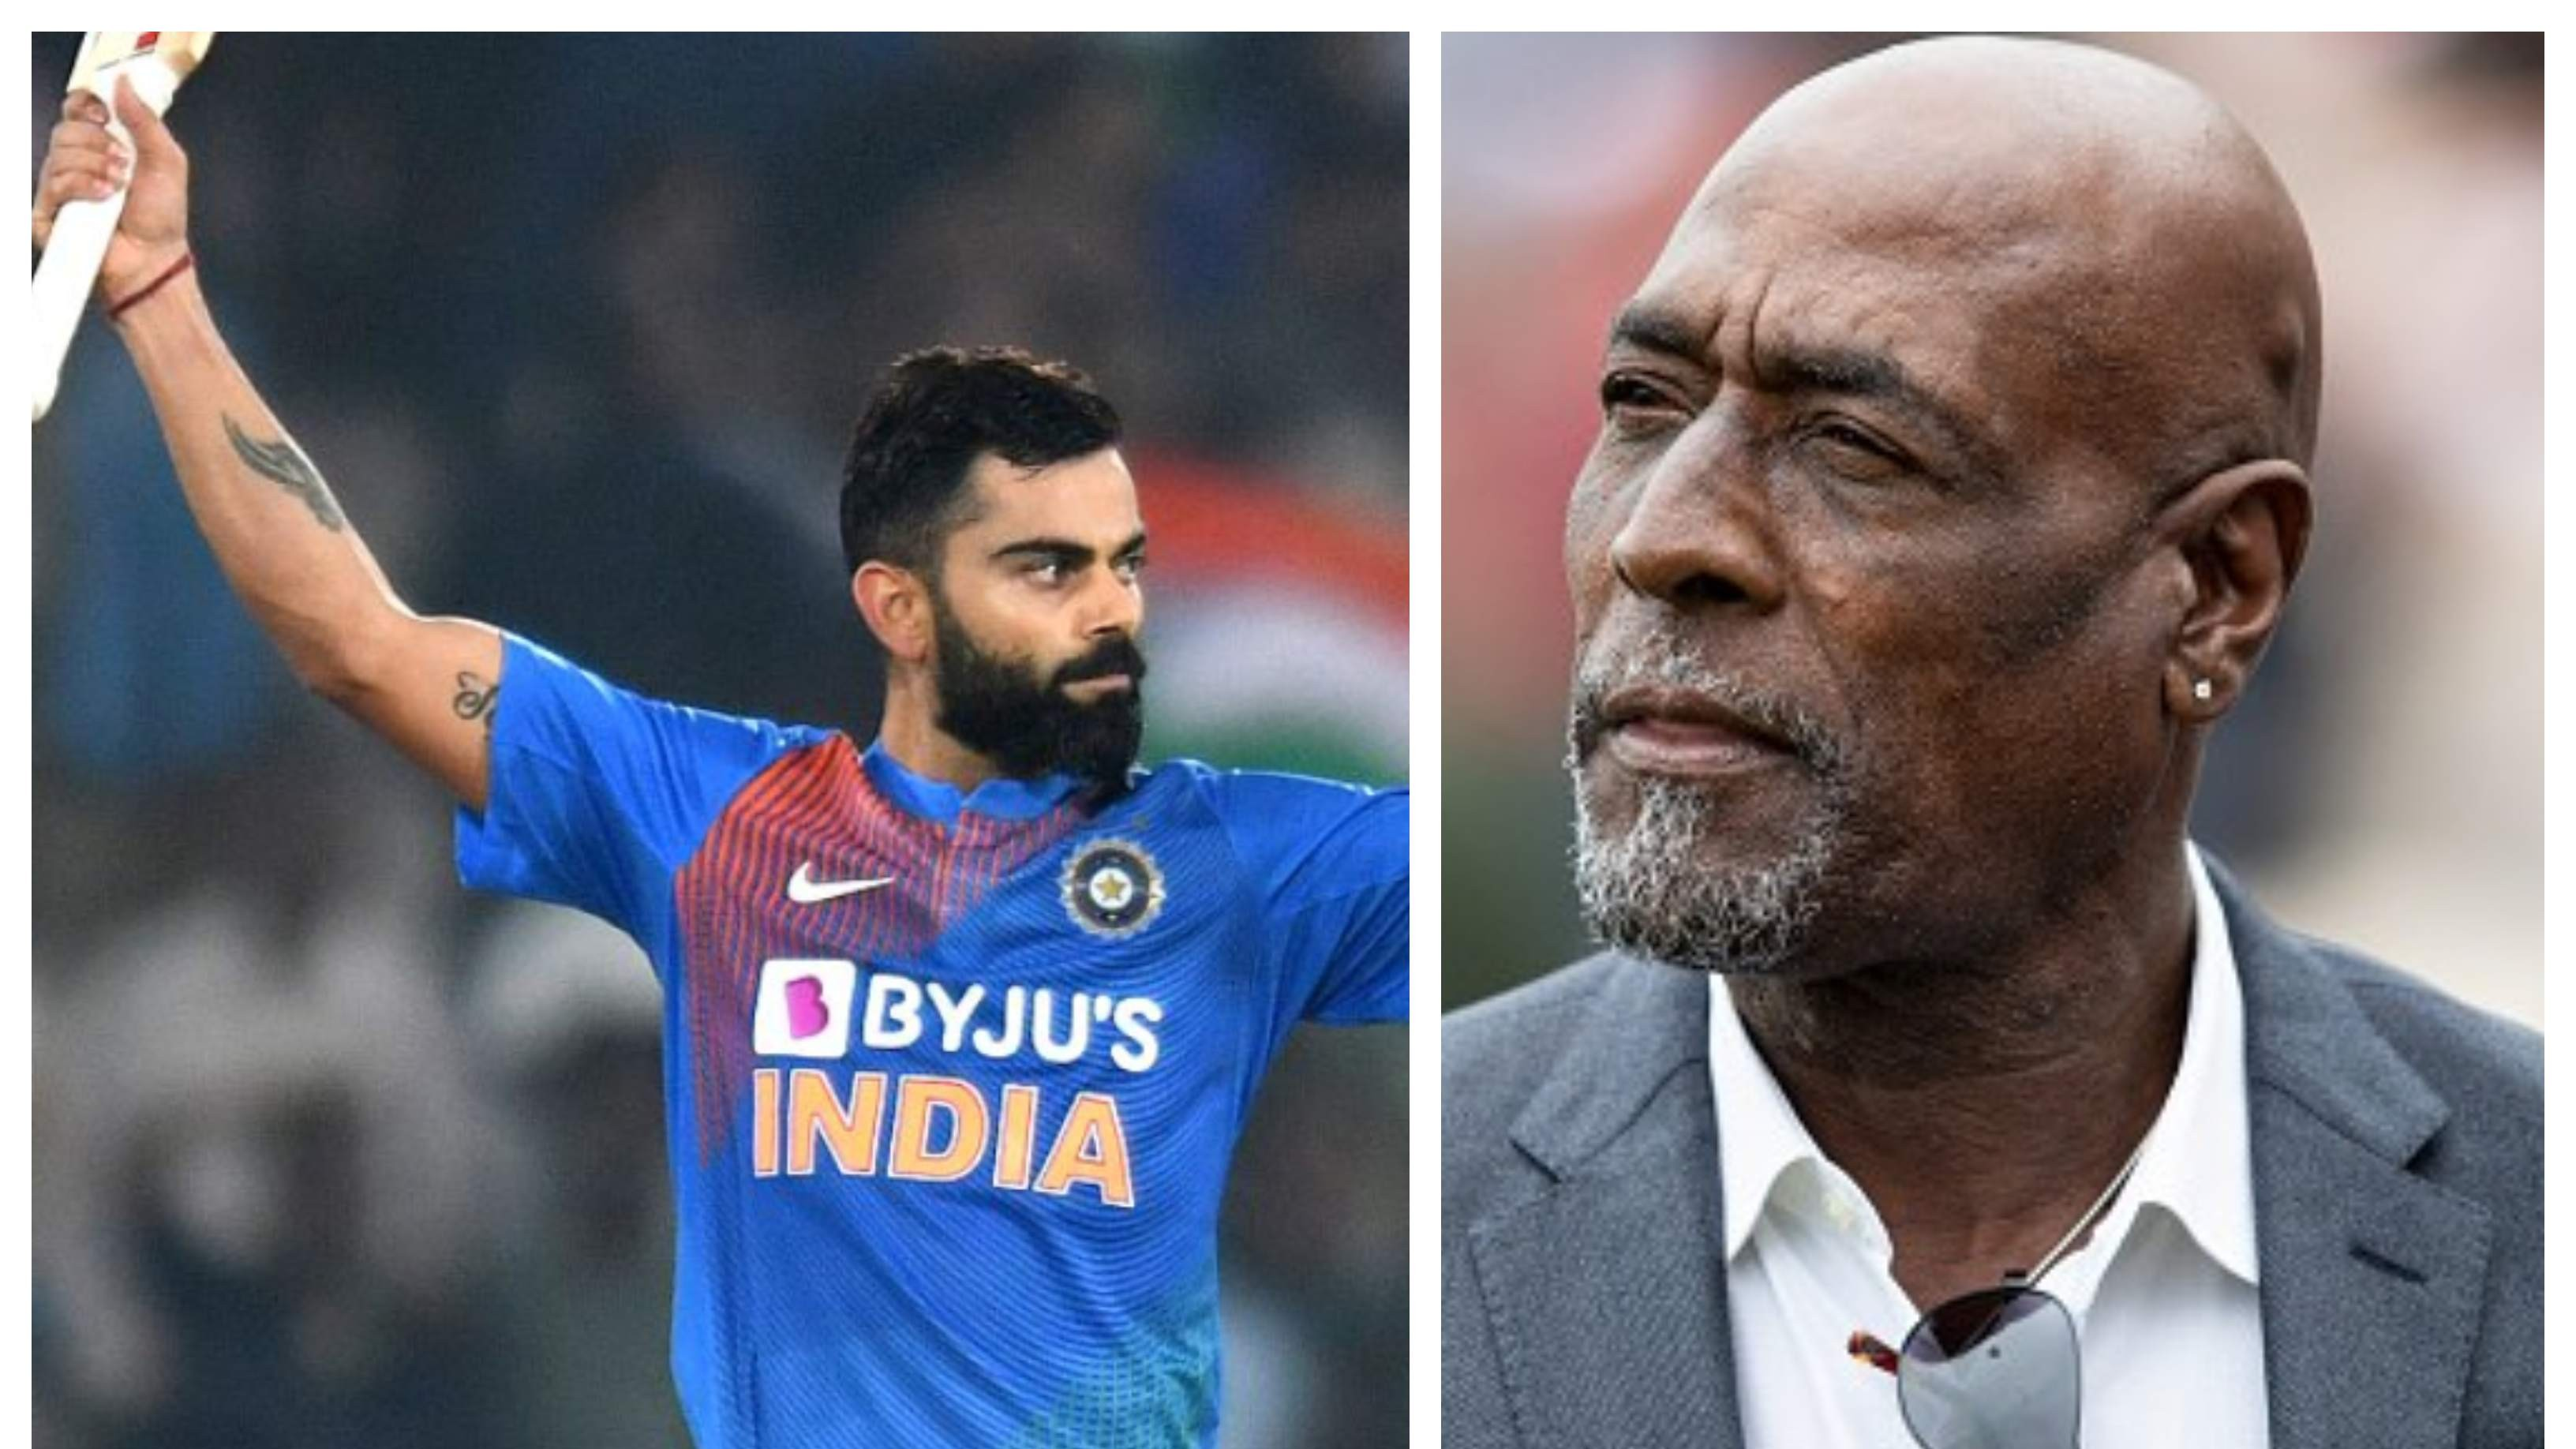 IND v WI 2019: Kohli reacts after receiving compliment from Sir Vivian Richards for his Hyderabad heroics